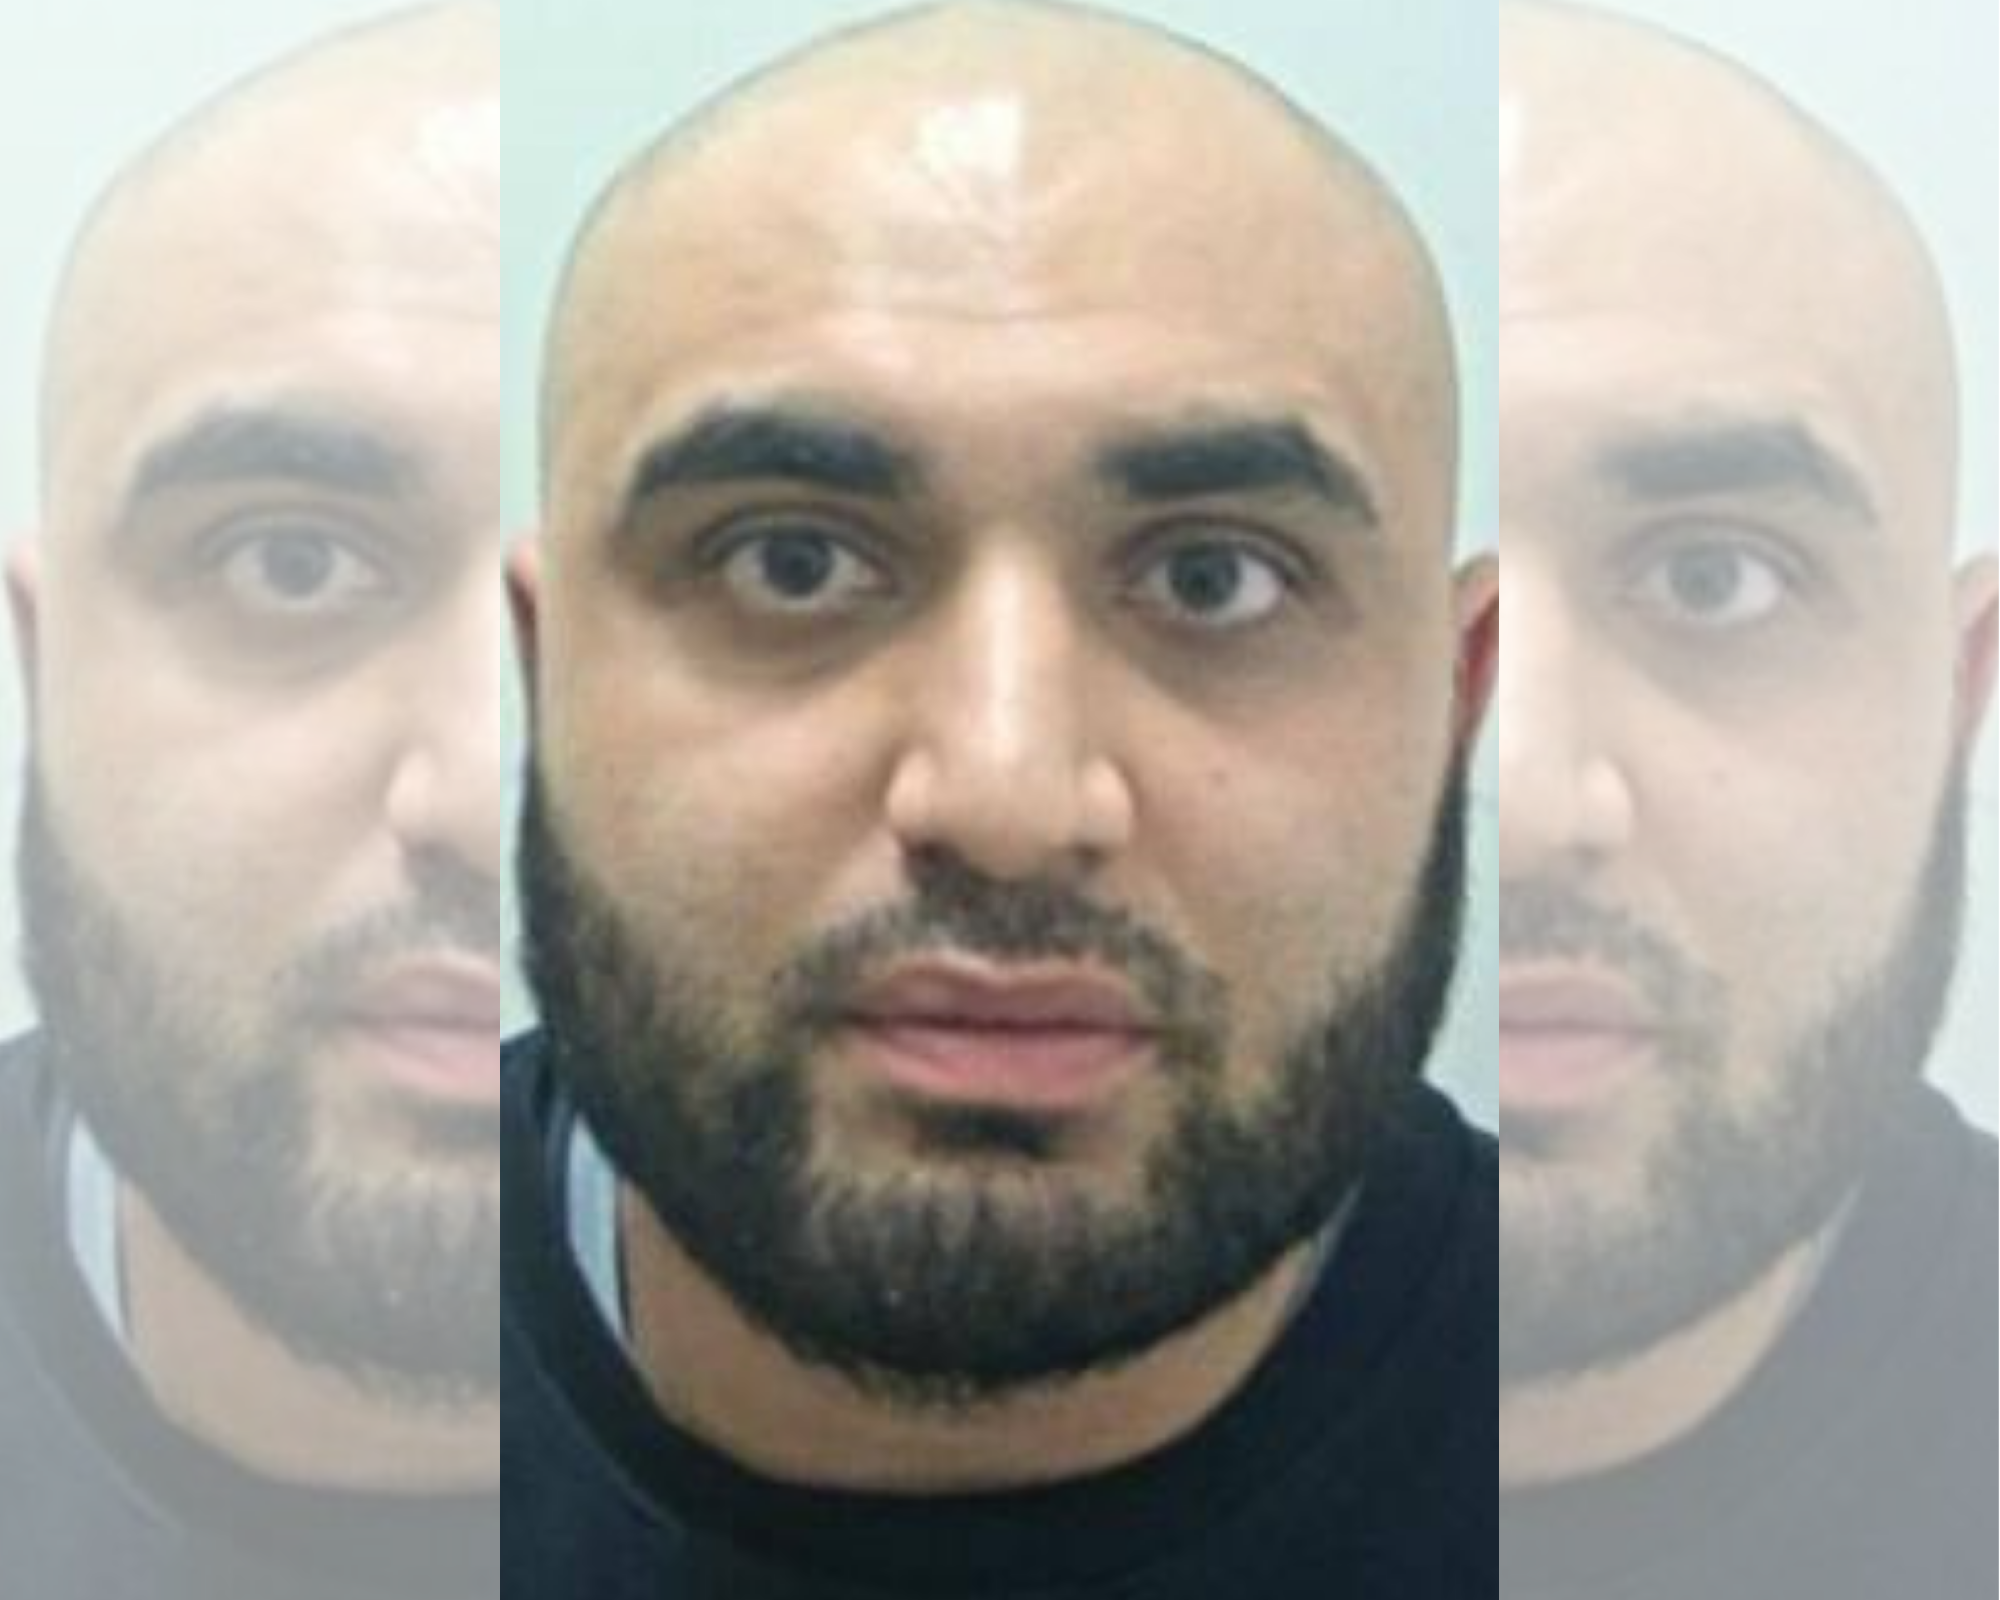 Dangerous rapist jailed for 22 years for string of violent offences